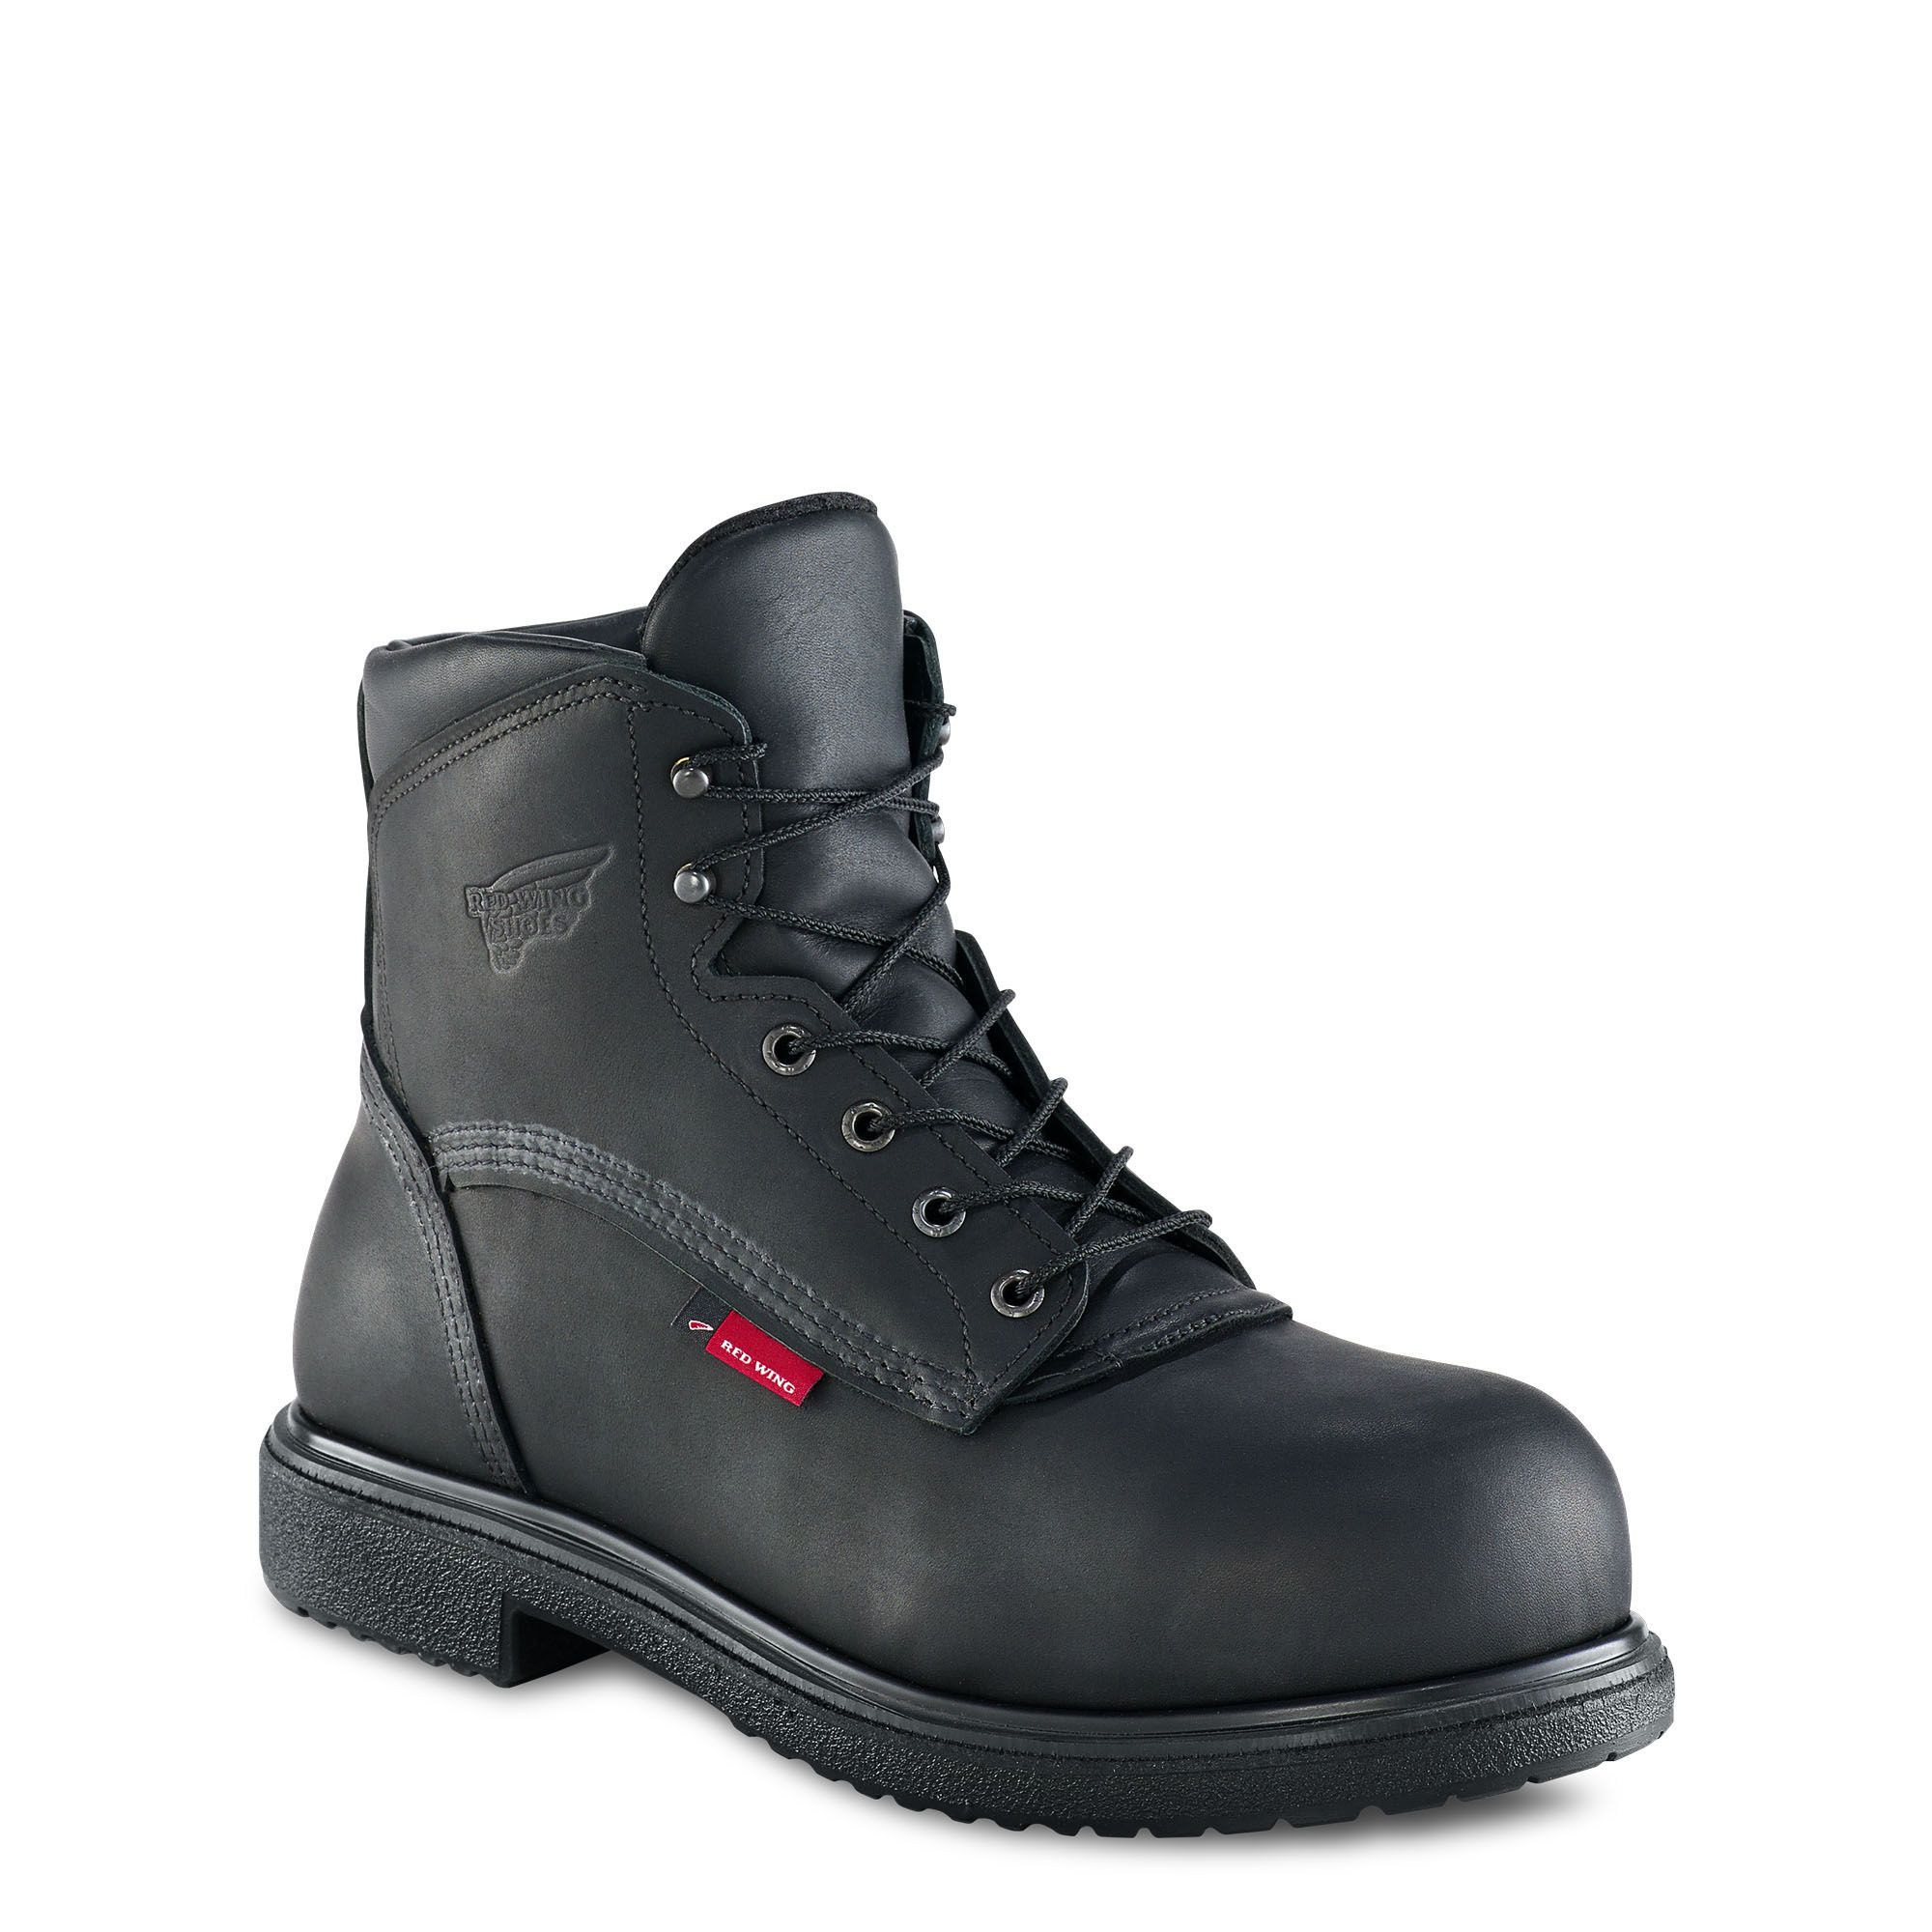 Red Wing 6 Inch Safety Boot Black Black boots, Boots